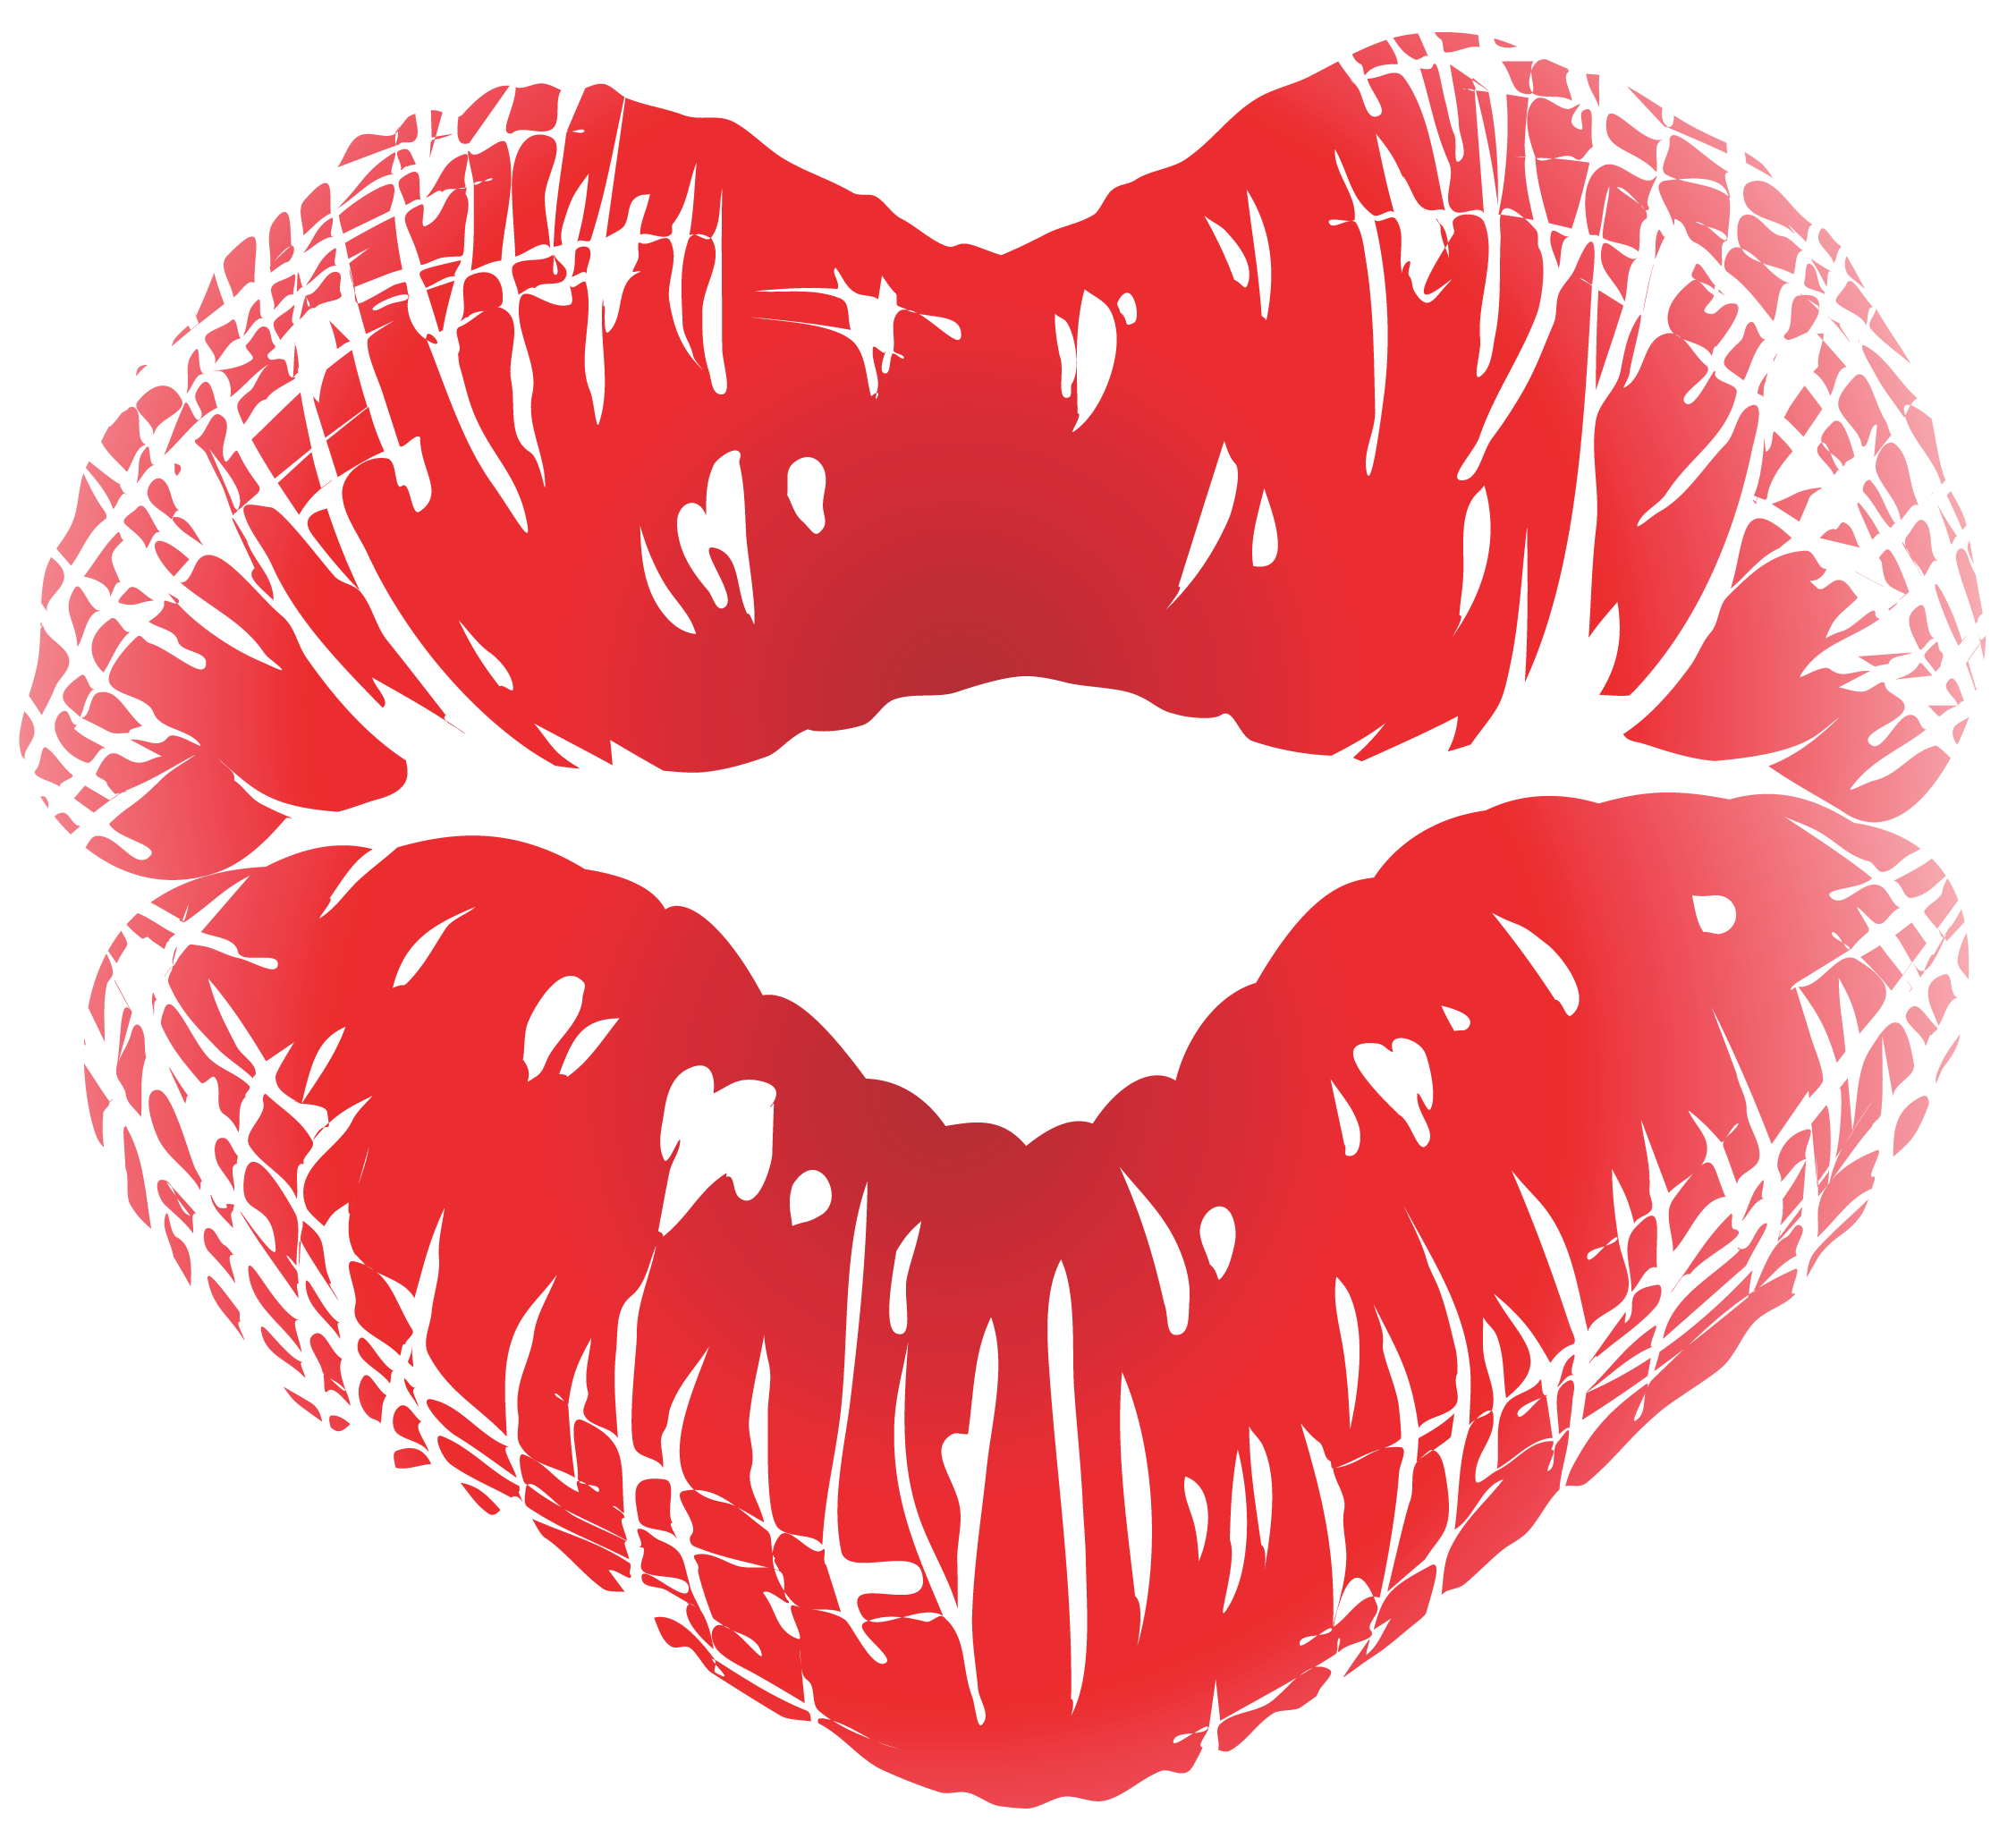 Clipart mouth photo booth lip. Sweet kiss png pinterest